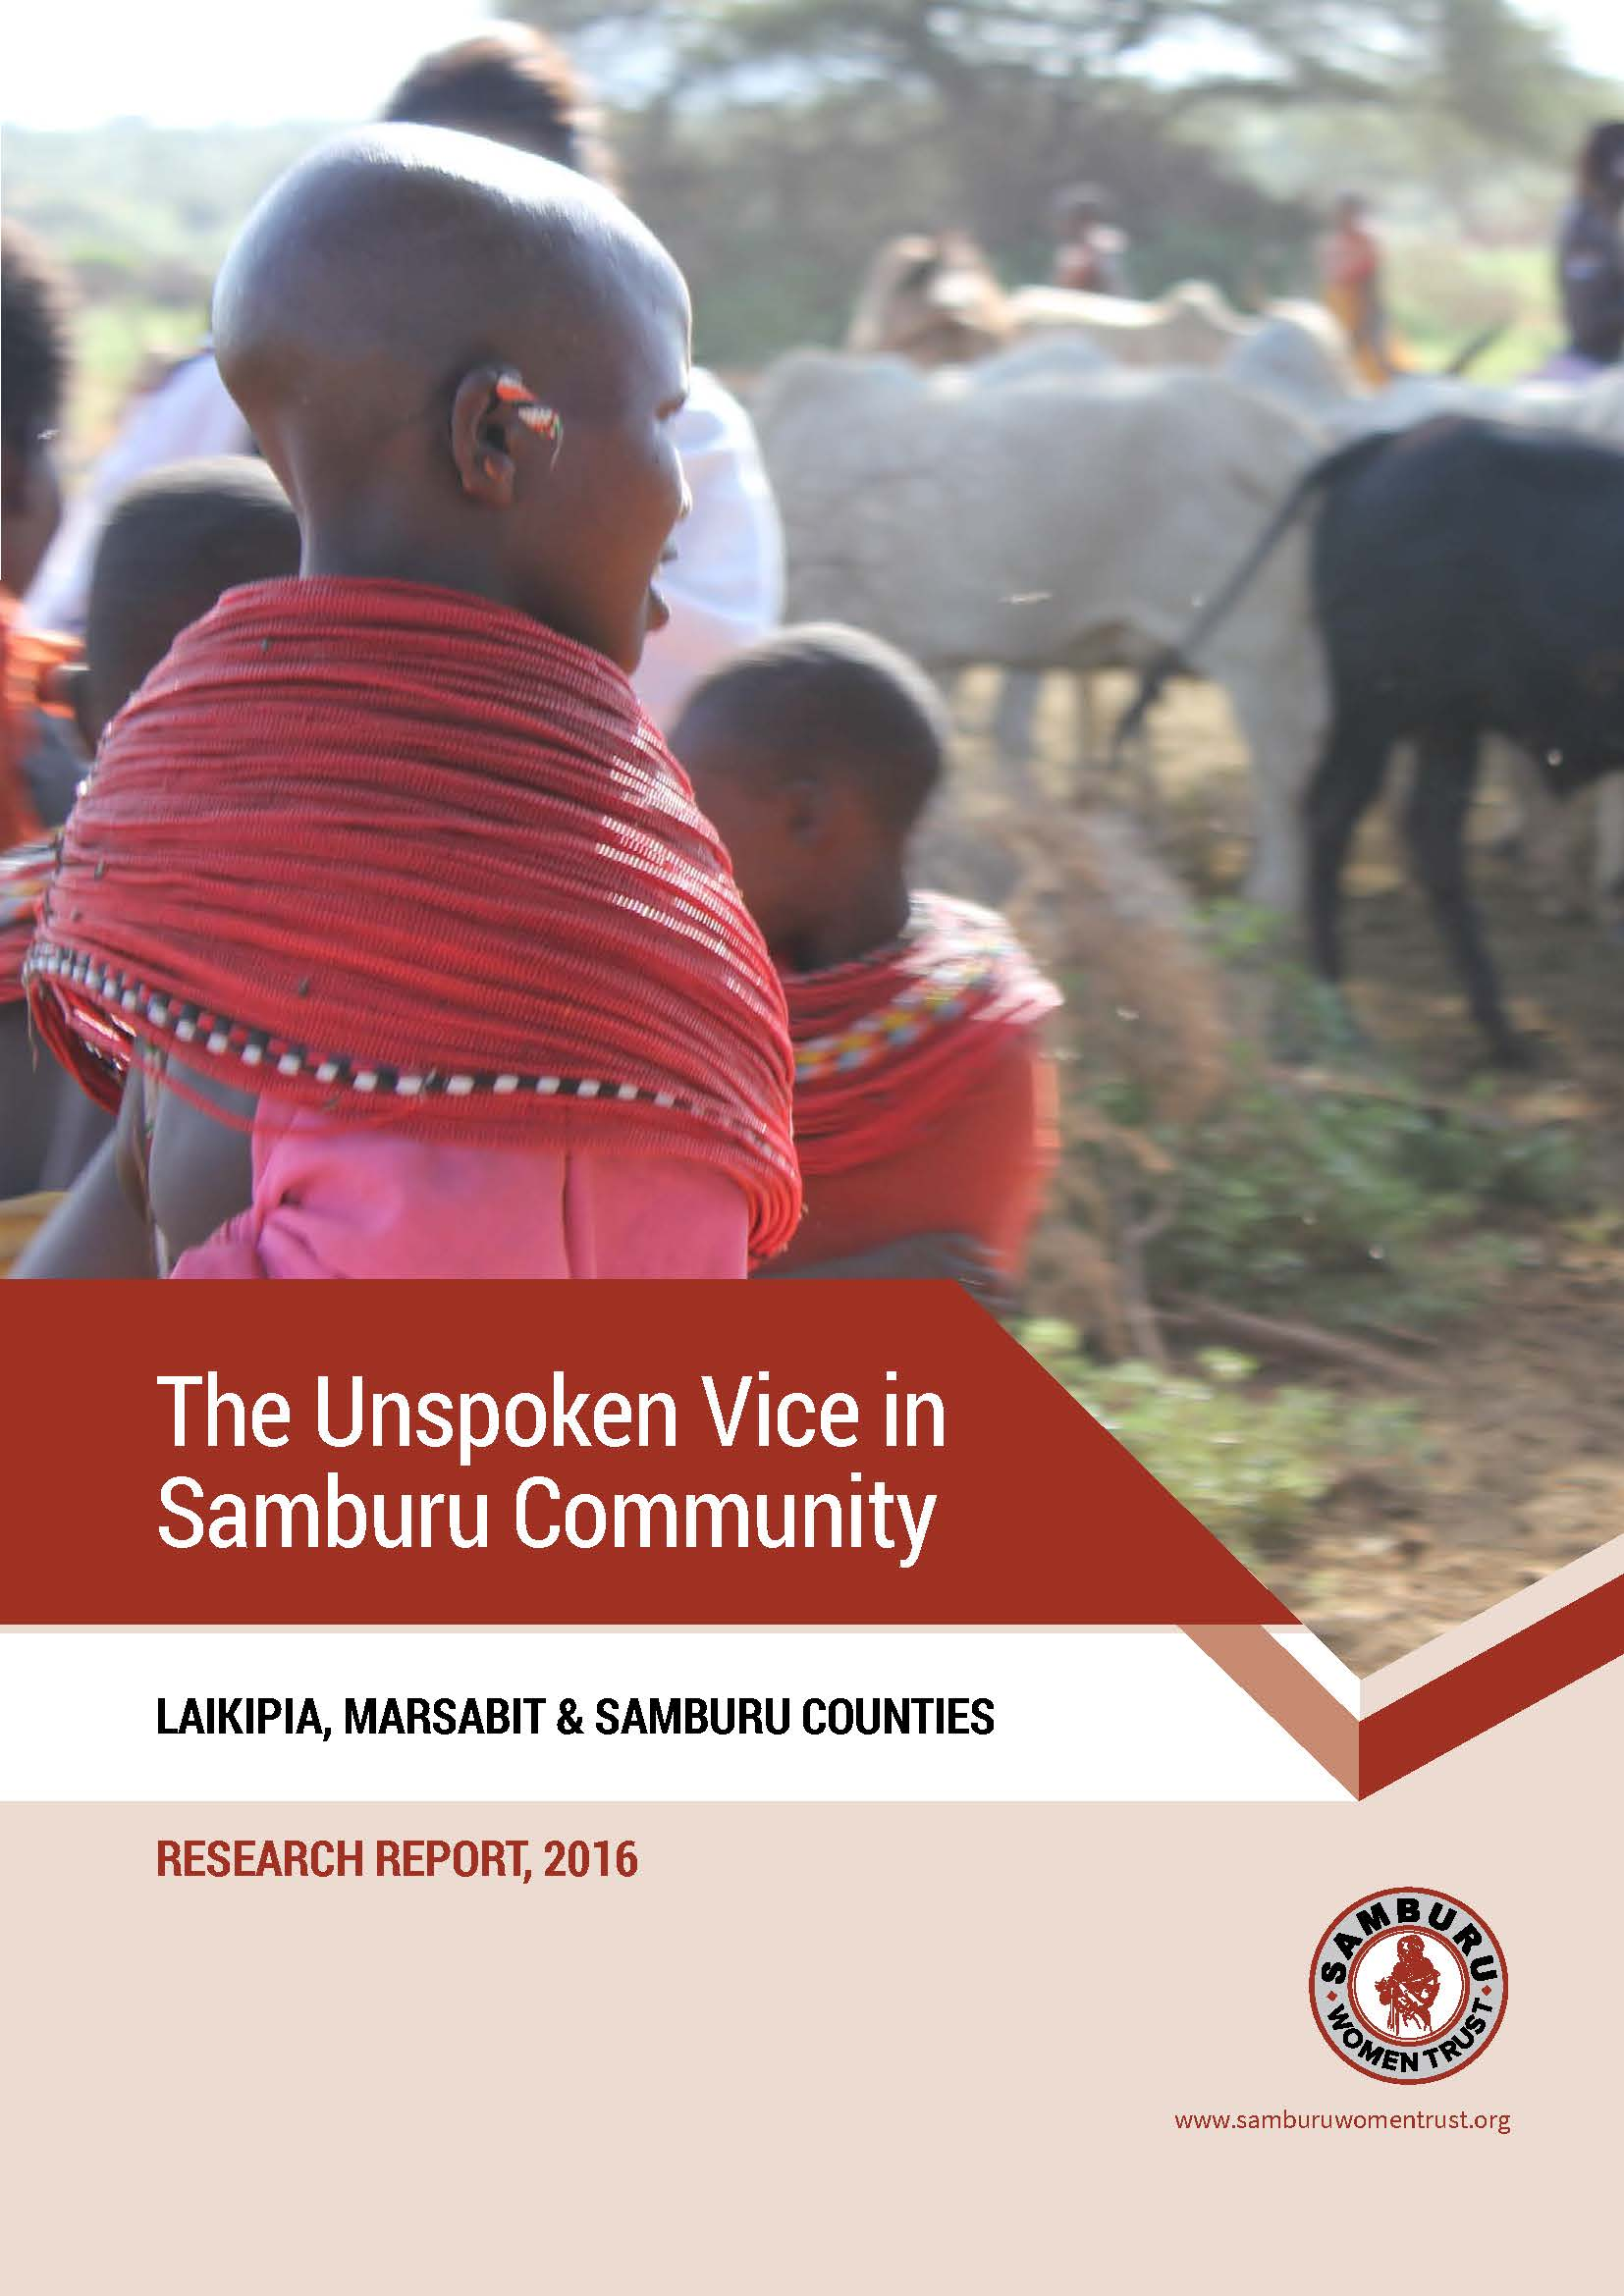 The Unspoken Vice in Samburu Community